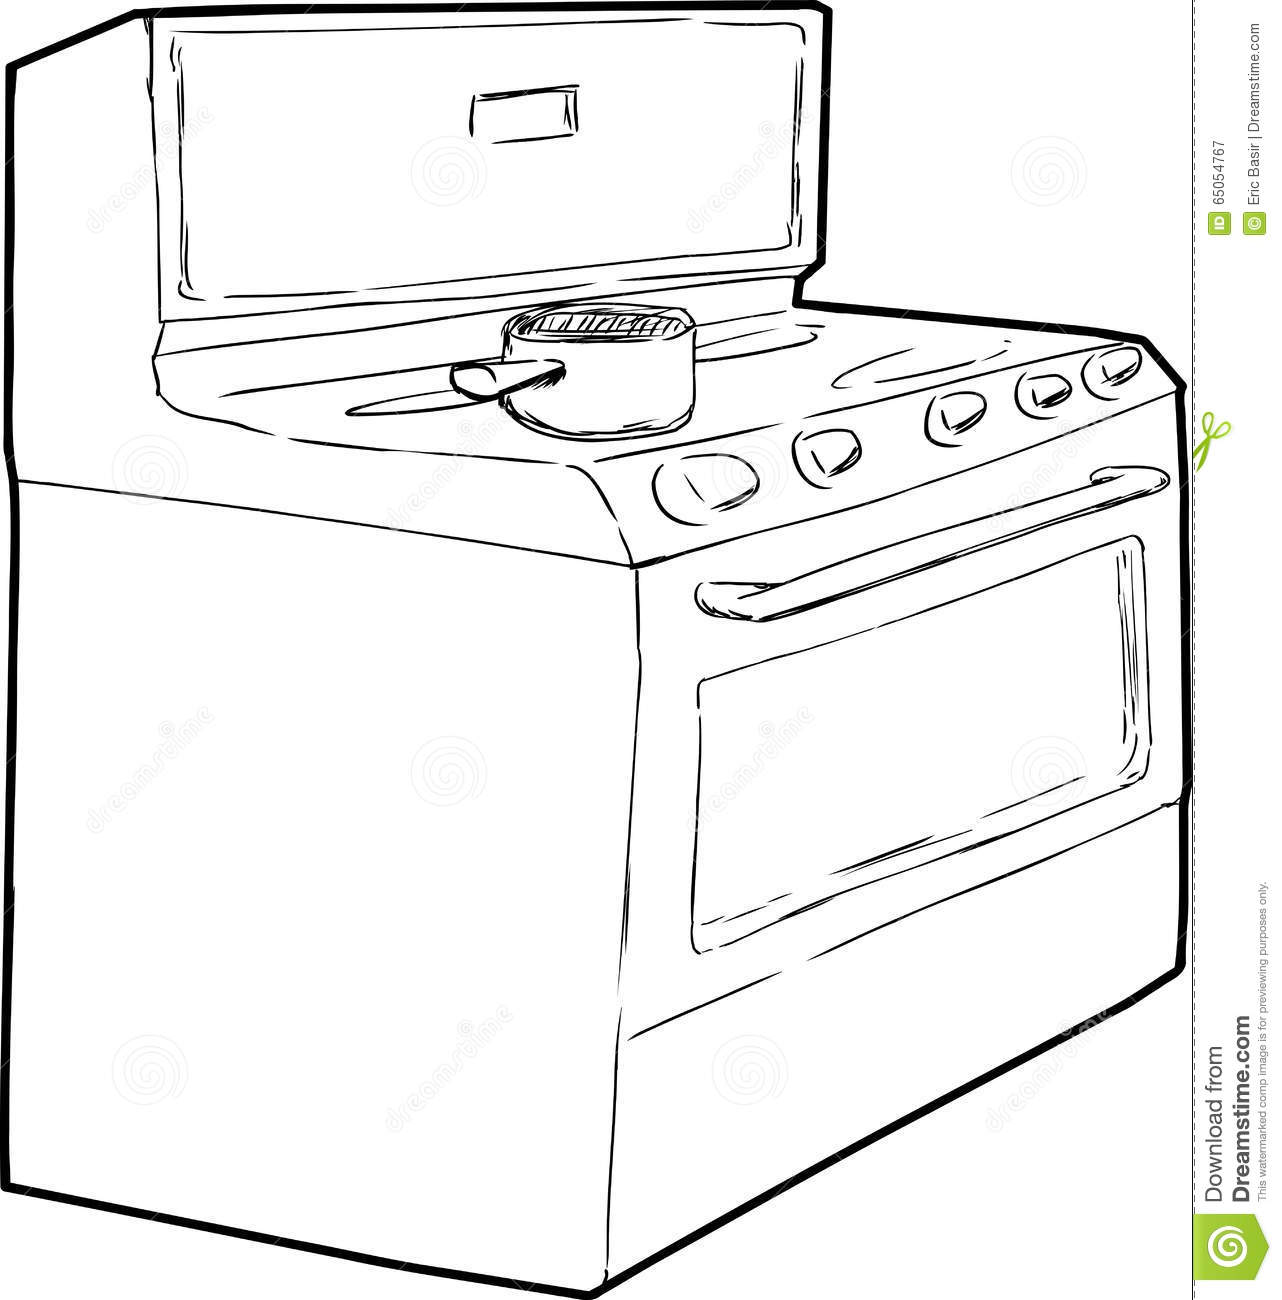 Pot On Top Of Stove Outline Stock Illustration